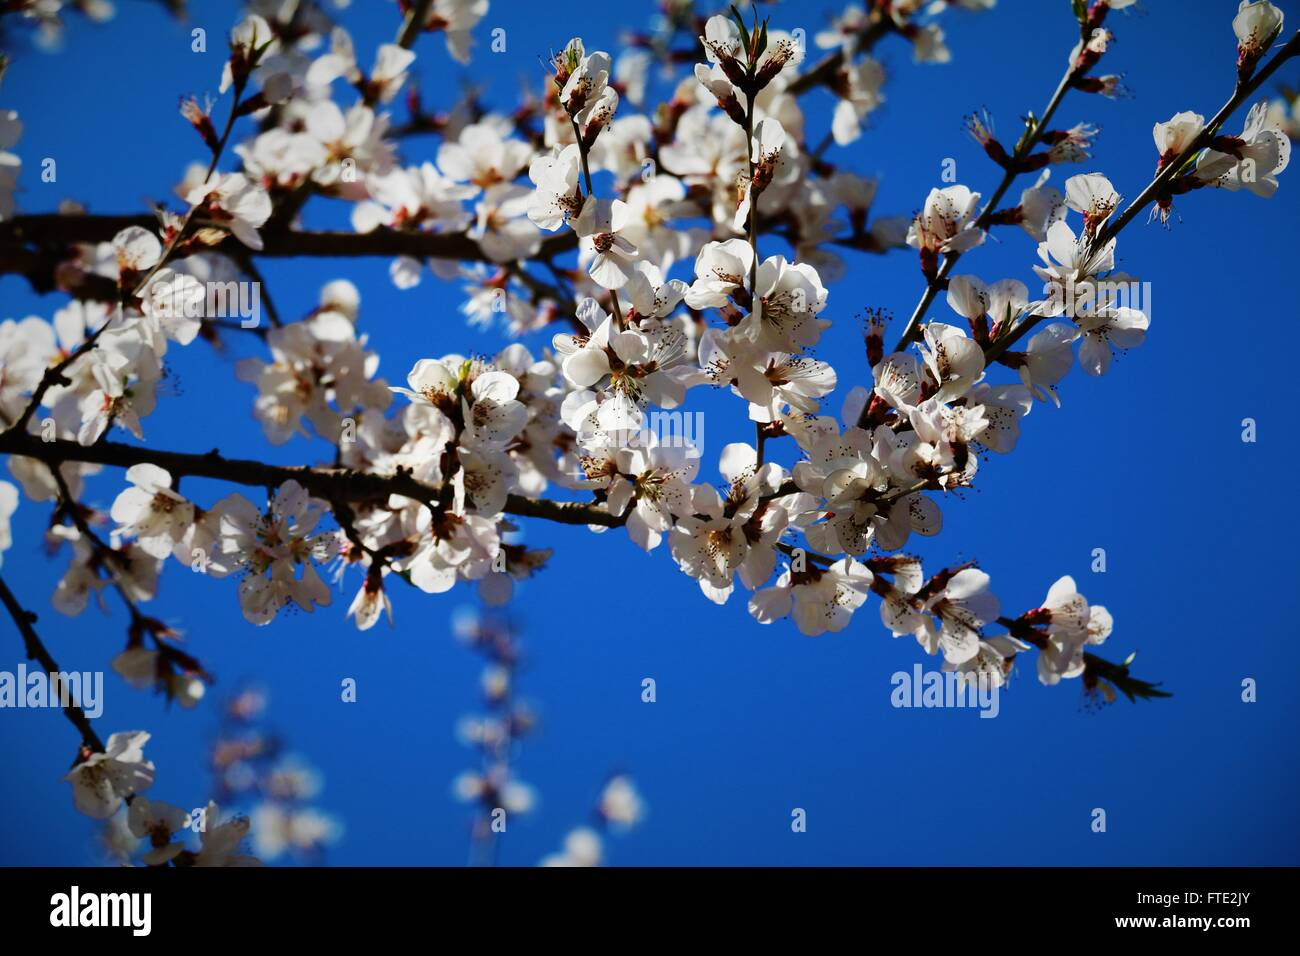 Beautiful white flowers and the blue sky - Stock Image